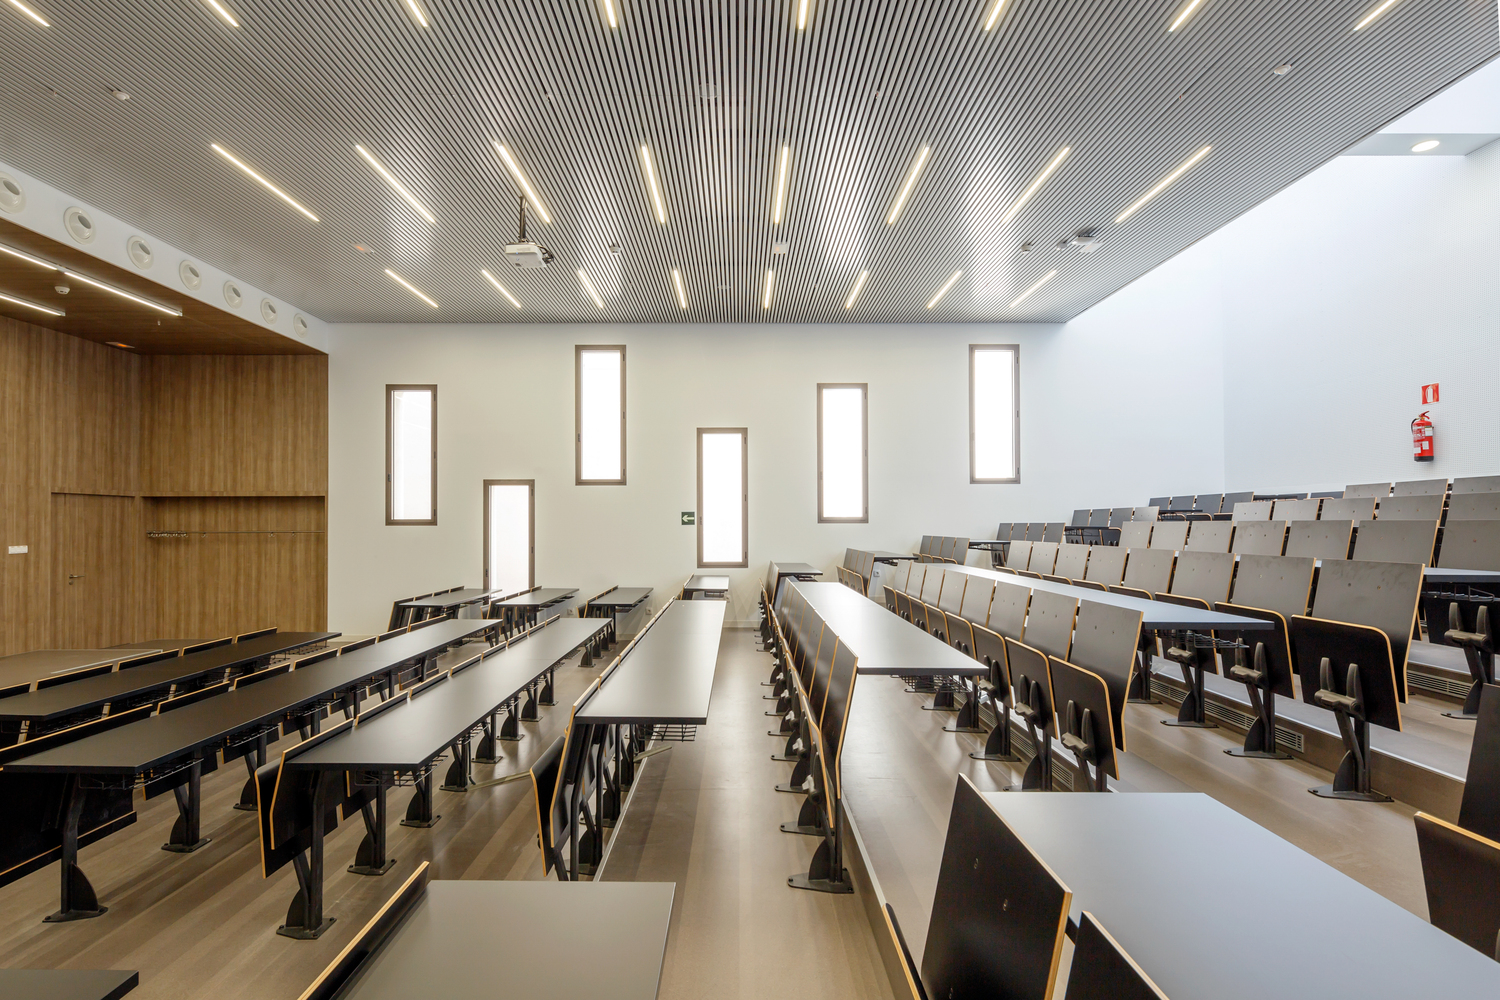 Classroom Lighting Design ~ Considering led lighting for classrooms brighter